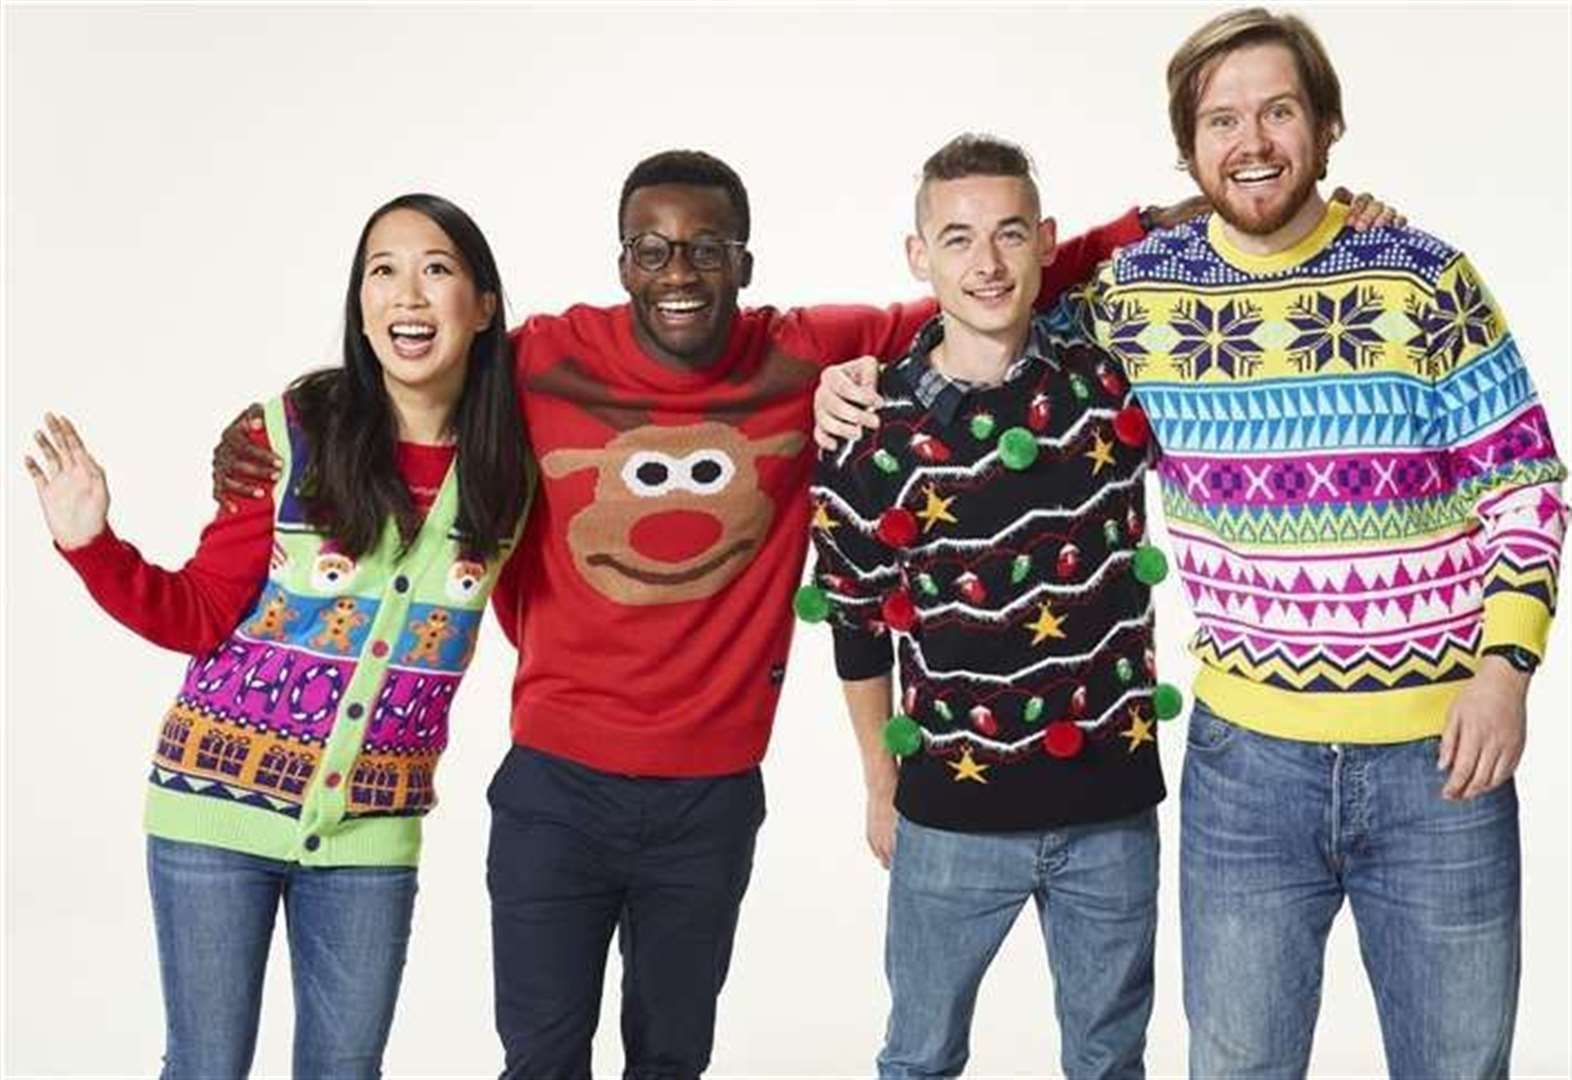 Wear your Christmas jumper with pride